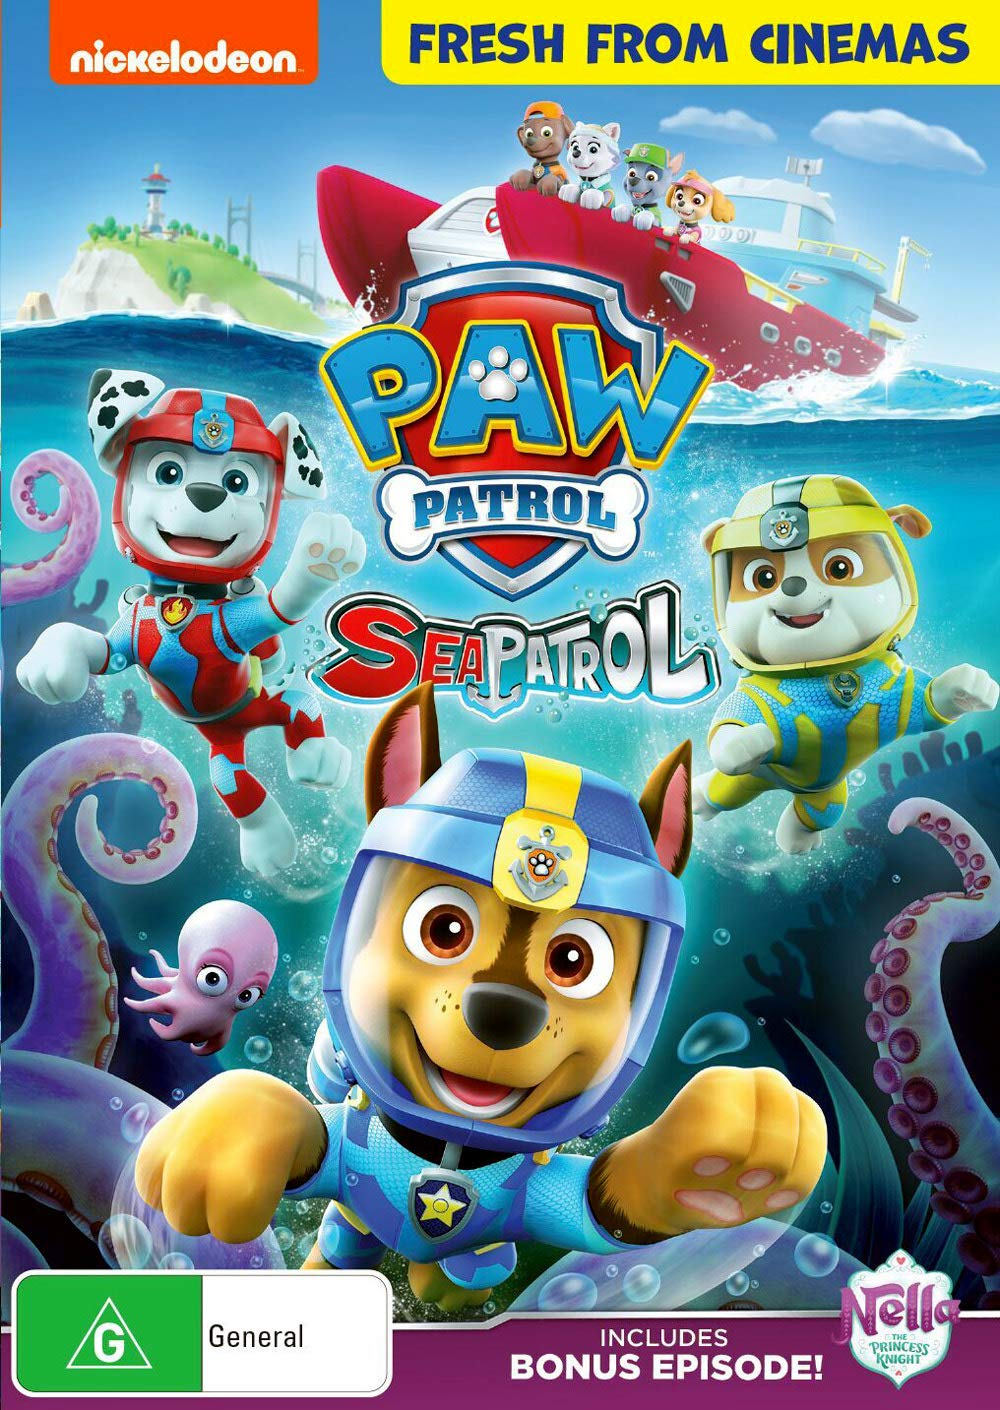 Paw Patrol: Sea Patrol (DVD): Alex Thorne (Voice), Ron Pardo (Voice